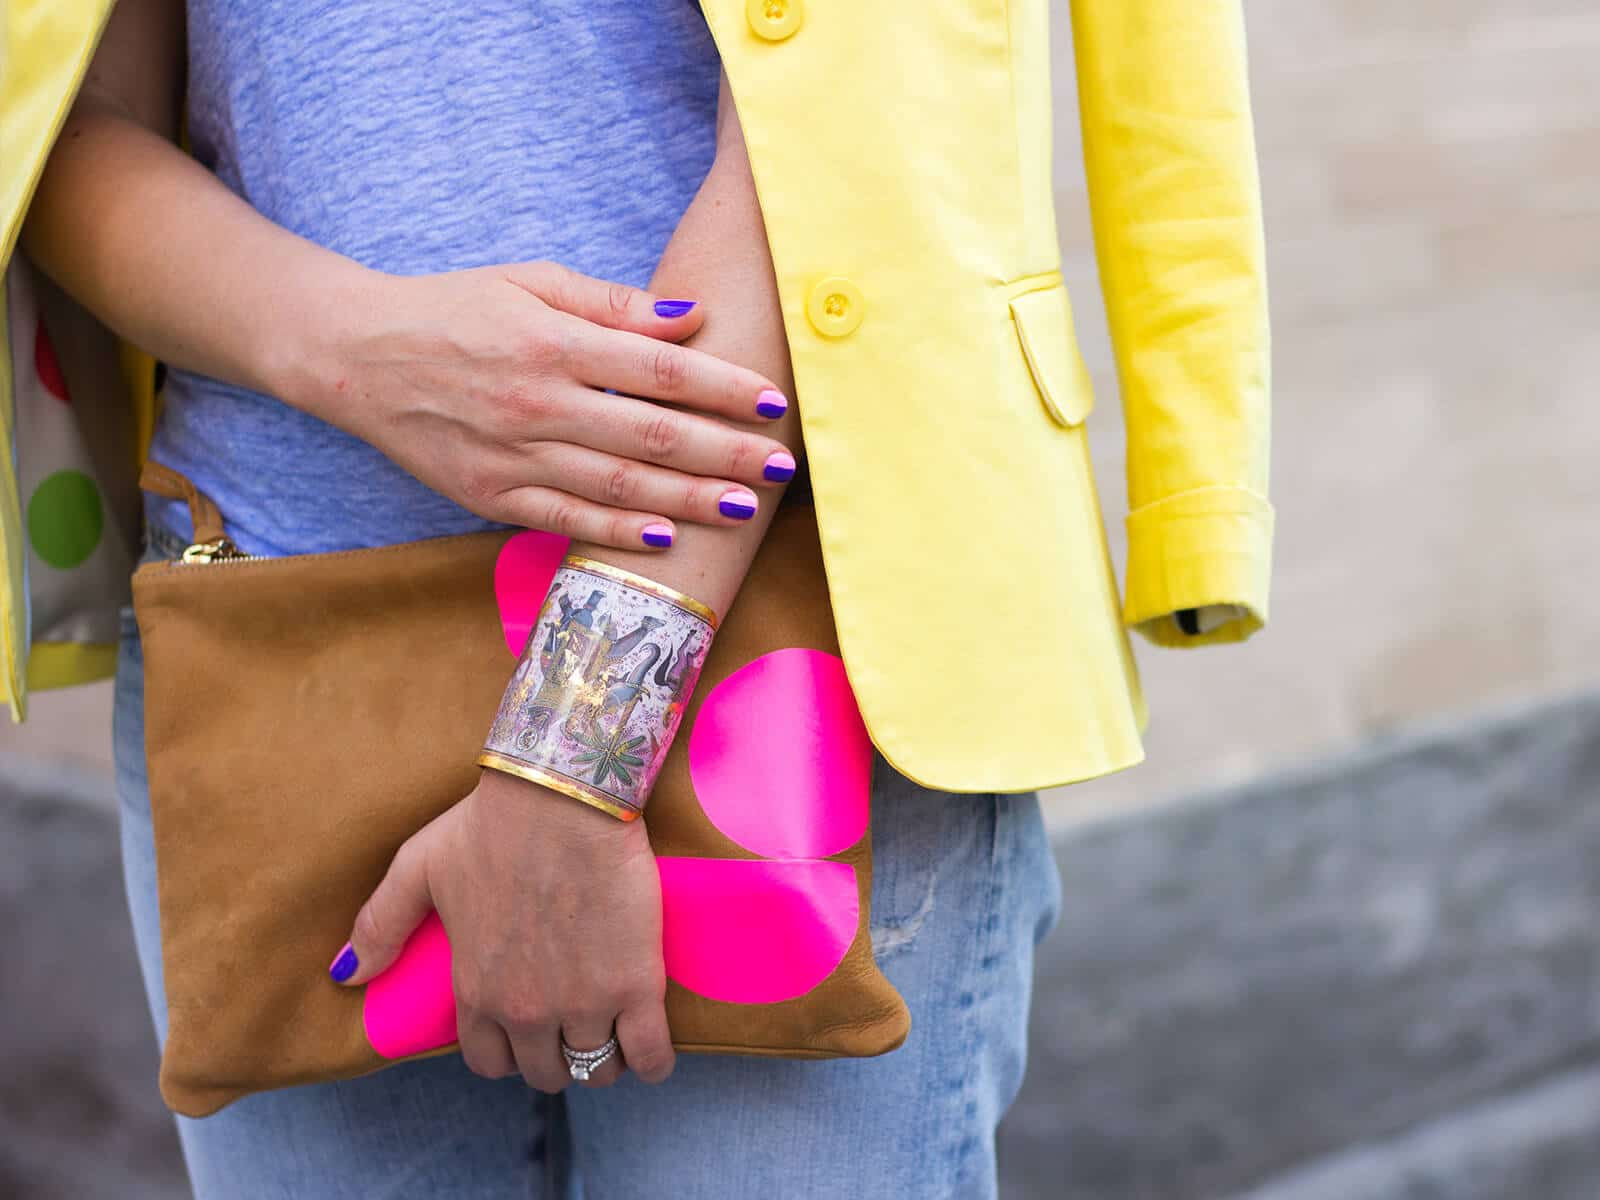 Transitional-Summer to Fall Outfit Blog Post